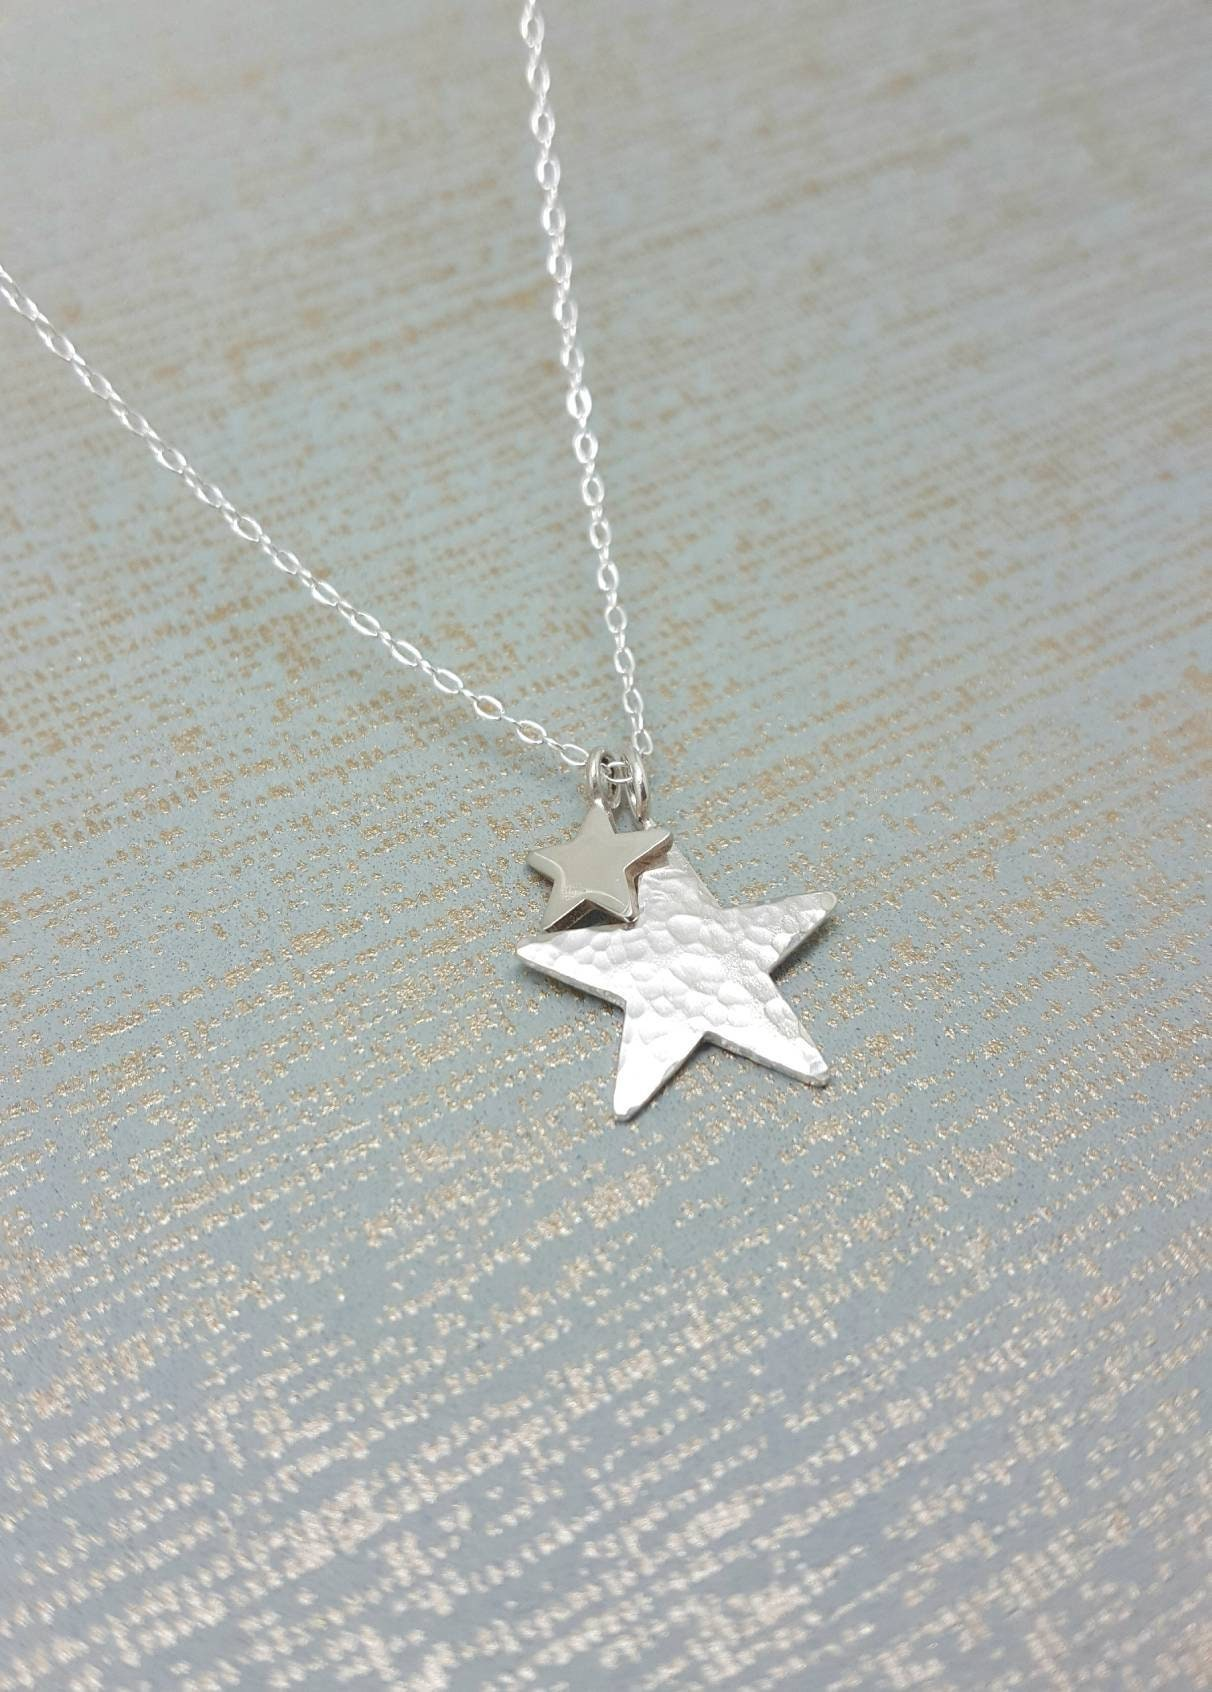 Minimal Celestial Star Jewelry Perfect Gift for Her STERLING SILVER STAR Pendant Necklace Silver Star Charm Lucky Star Necklace